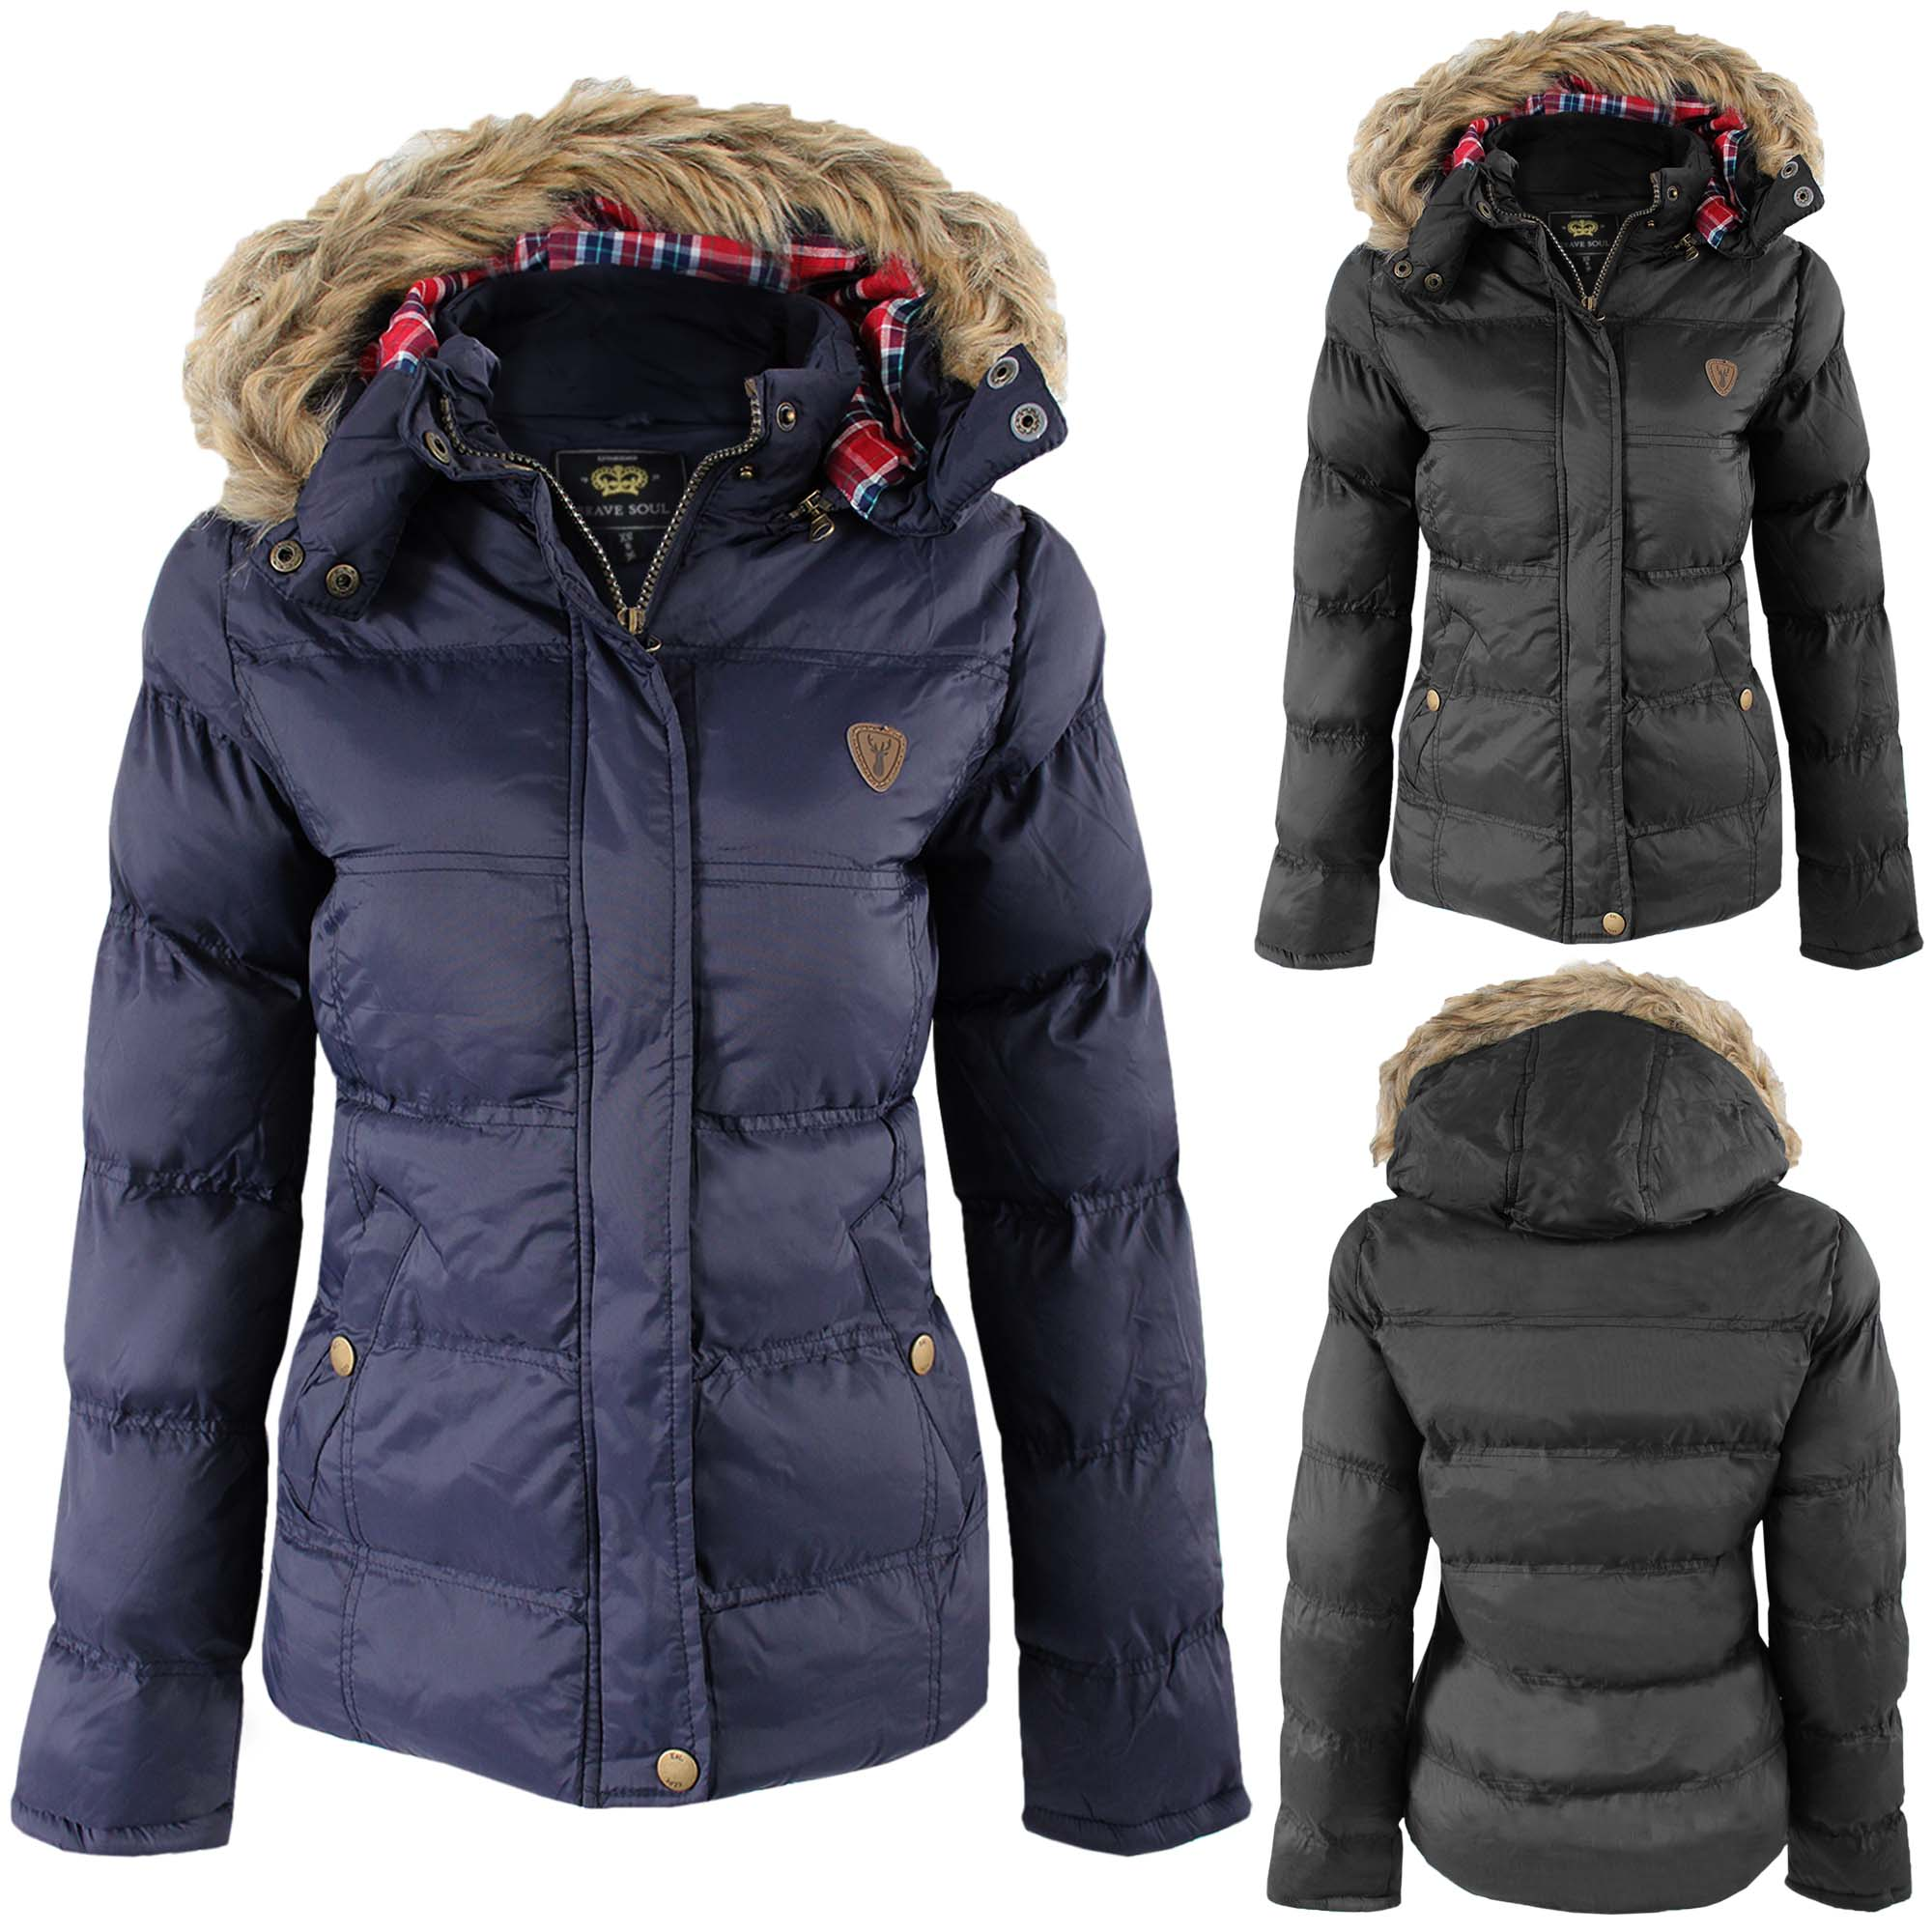 Womens Long Padded Winter Coats - Tradingbasis